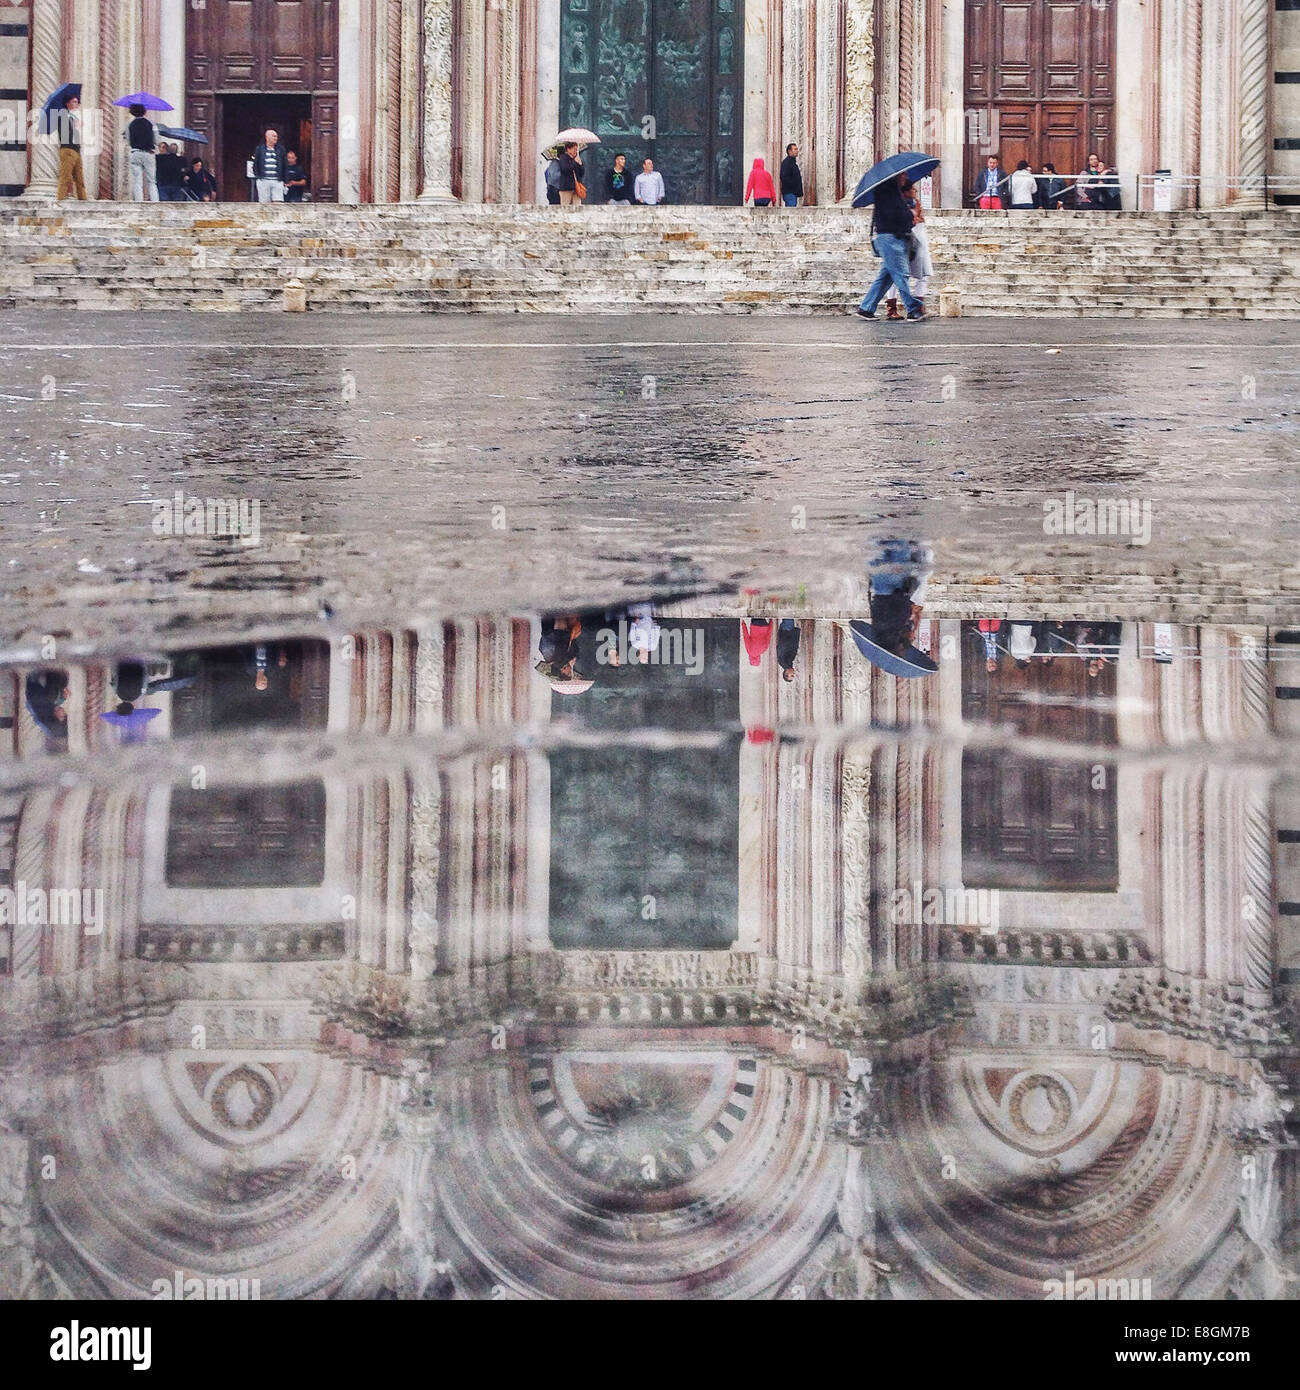 Italia, Tuscany, Siena, Cathedral reflected in puddle - Stock Image